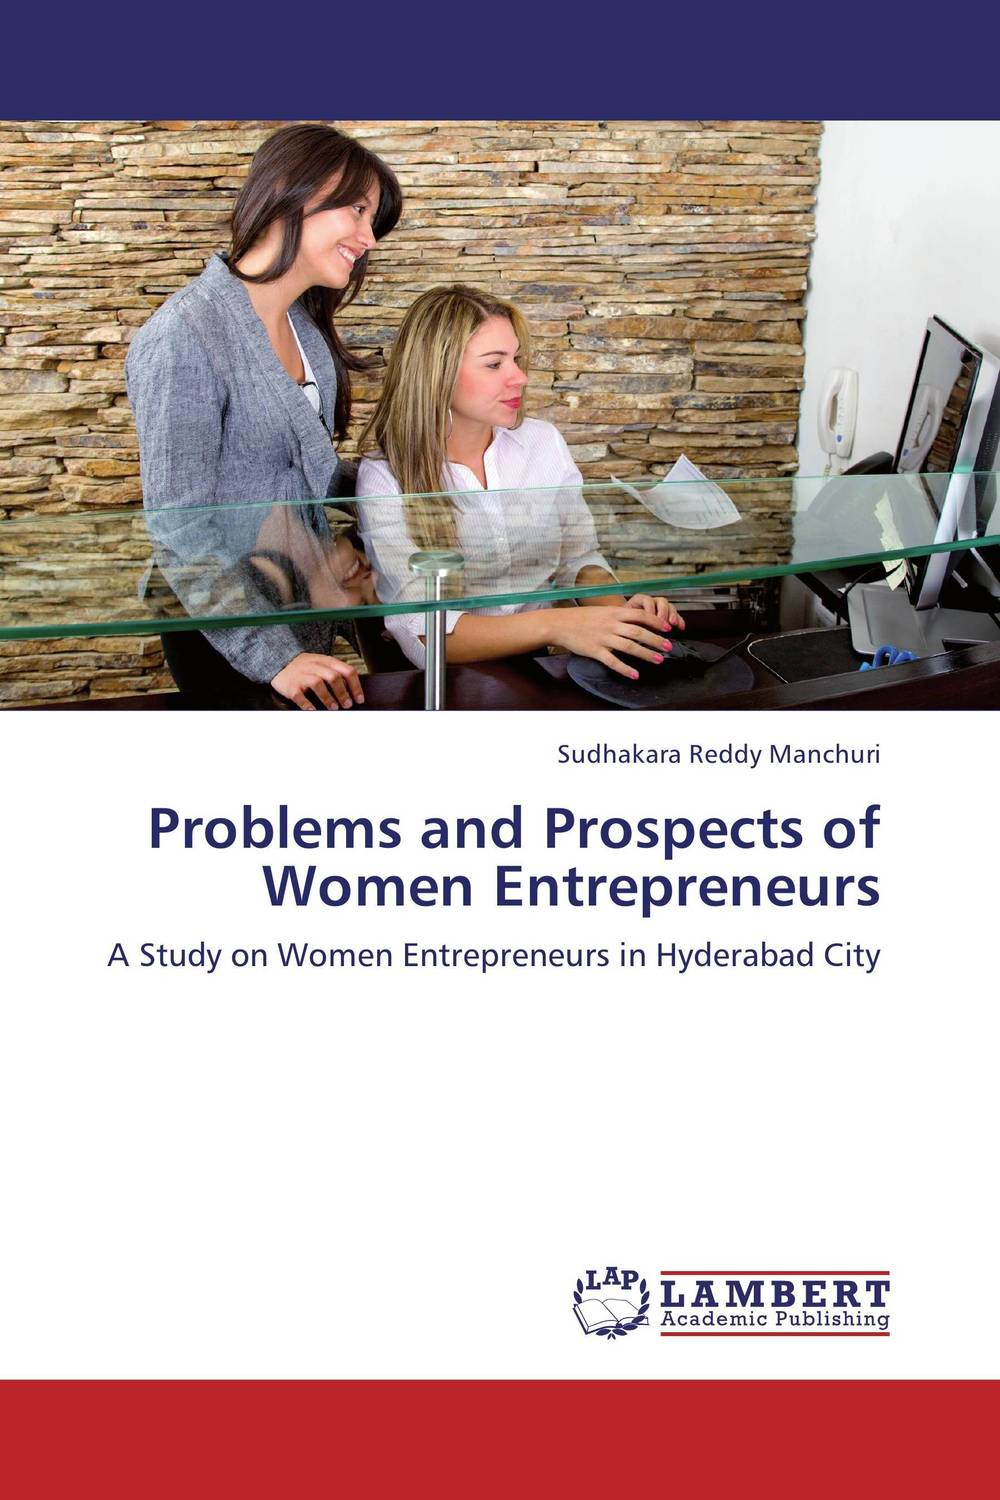 Problems and Prospects of Women Entrepreneurs problems and prospects of women entrepreneurs